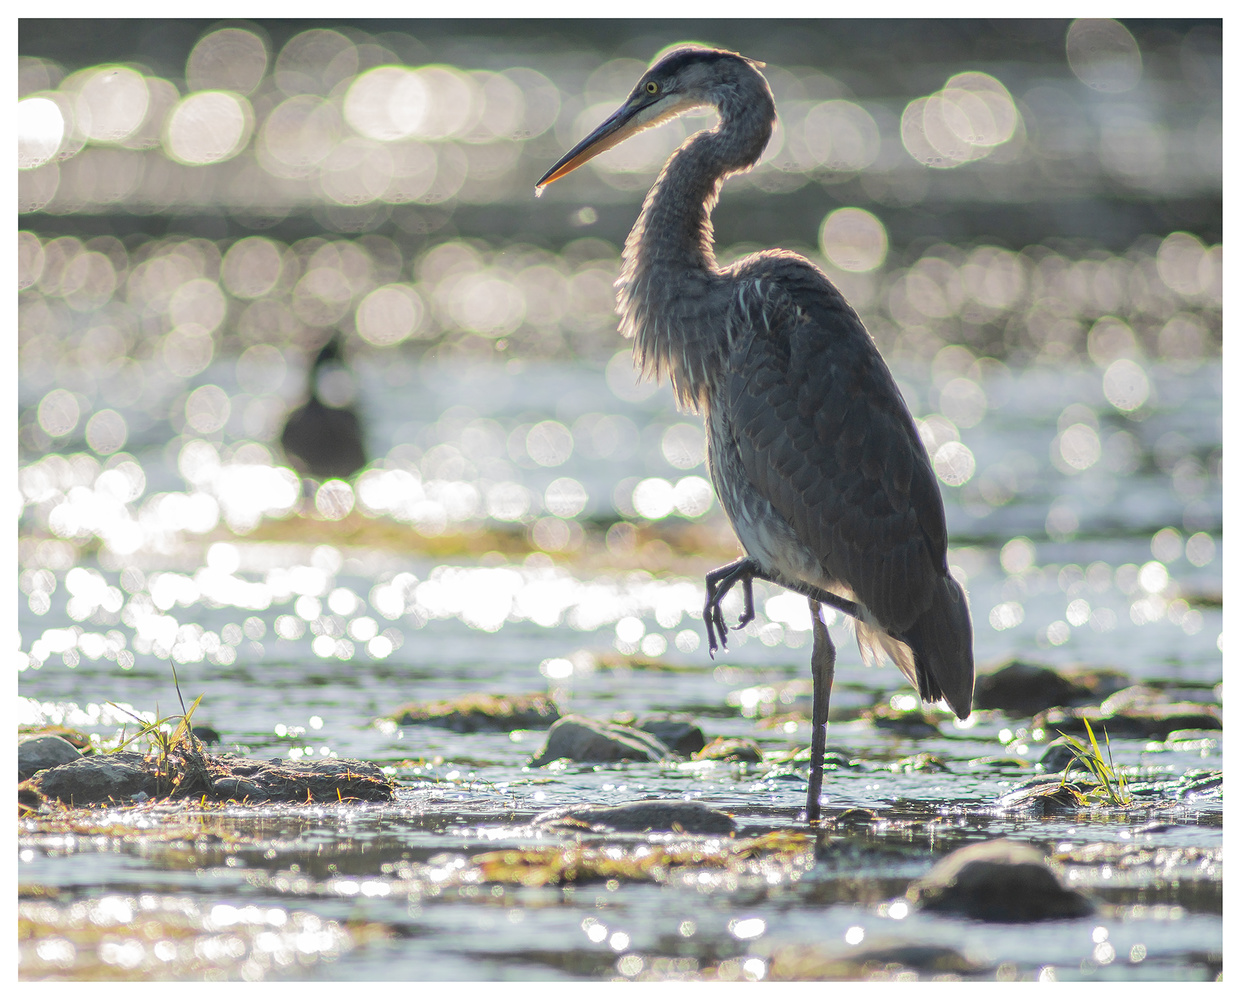 A Statuesque Heron by Danial McCoy